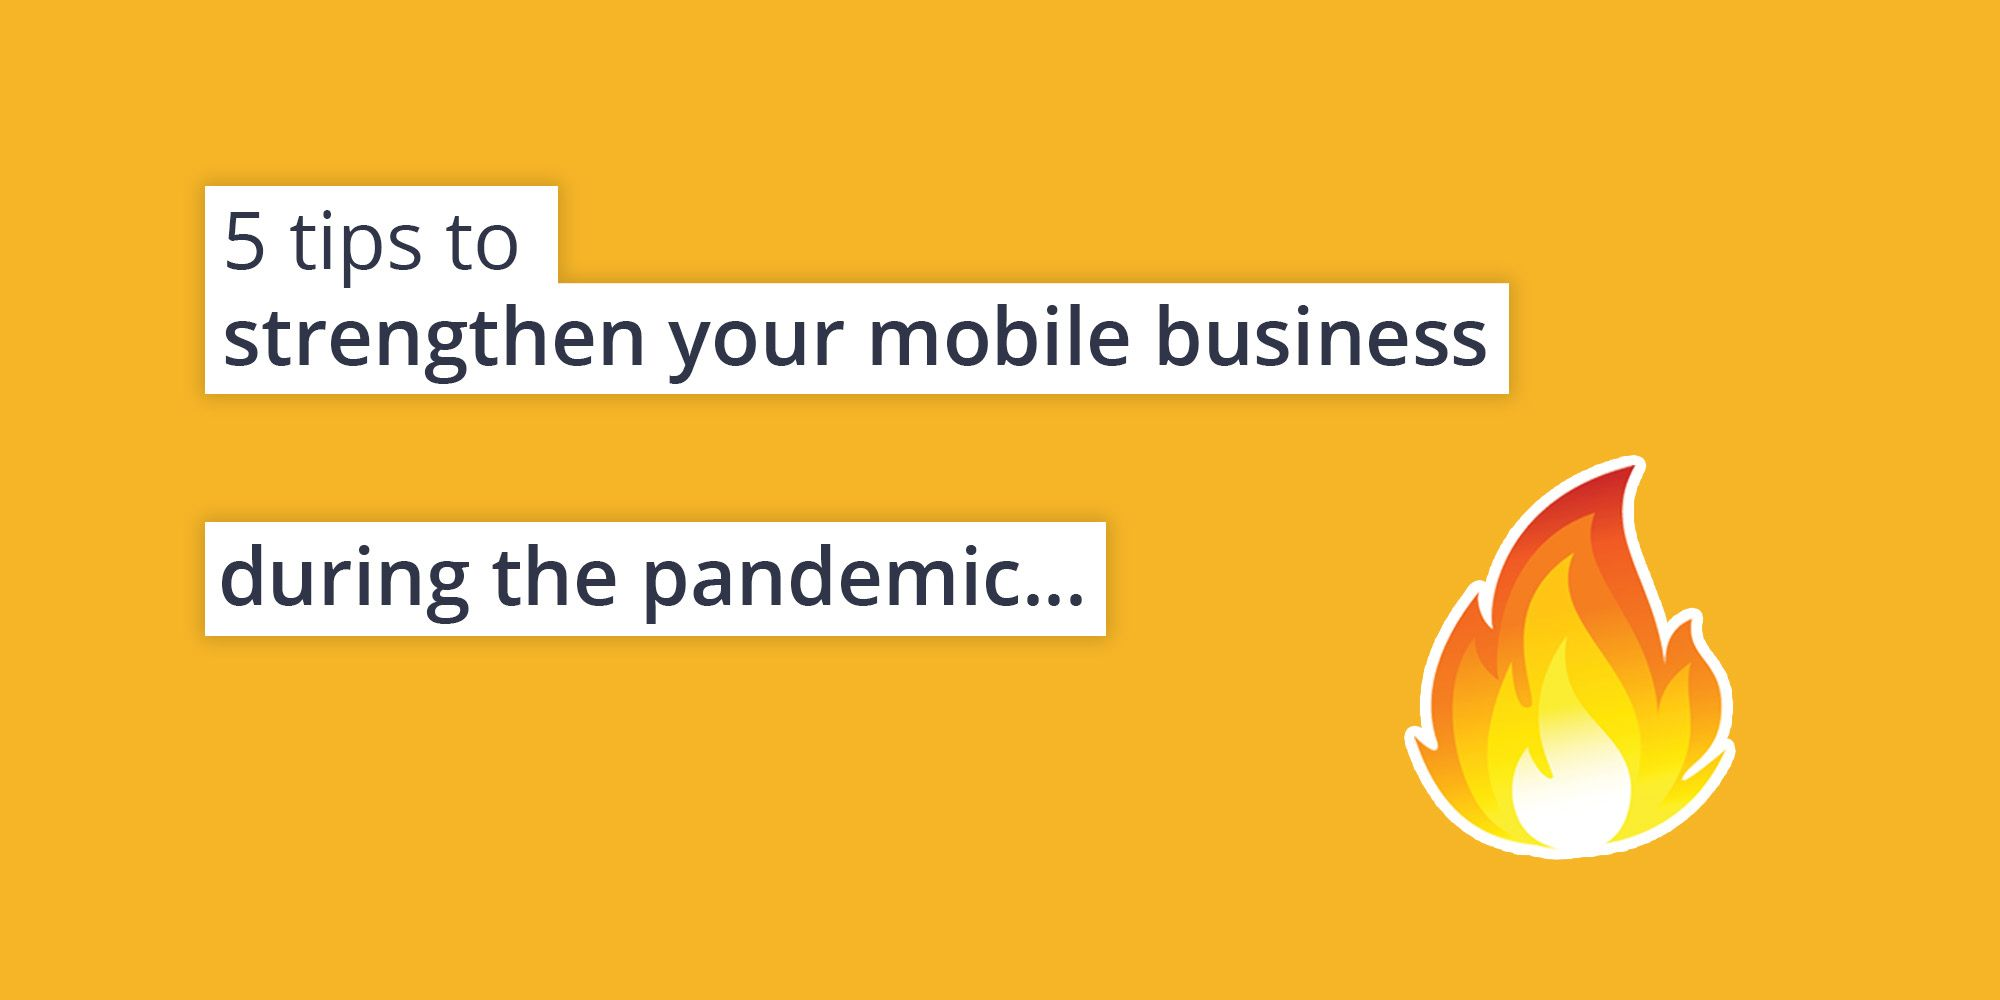 5 ways to buoy your mobile business during the pandemic